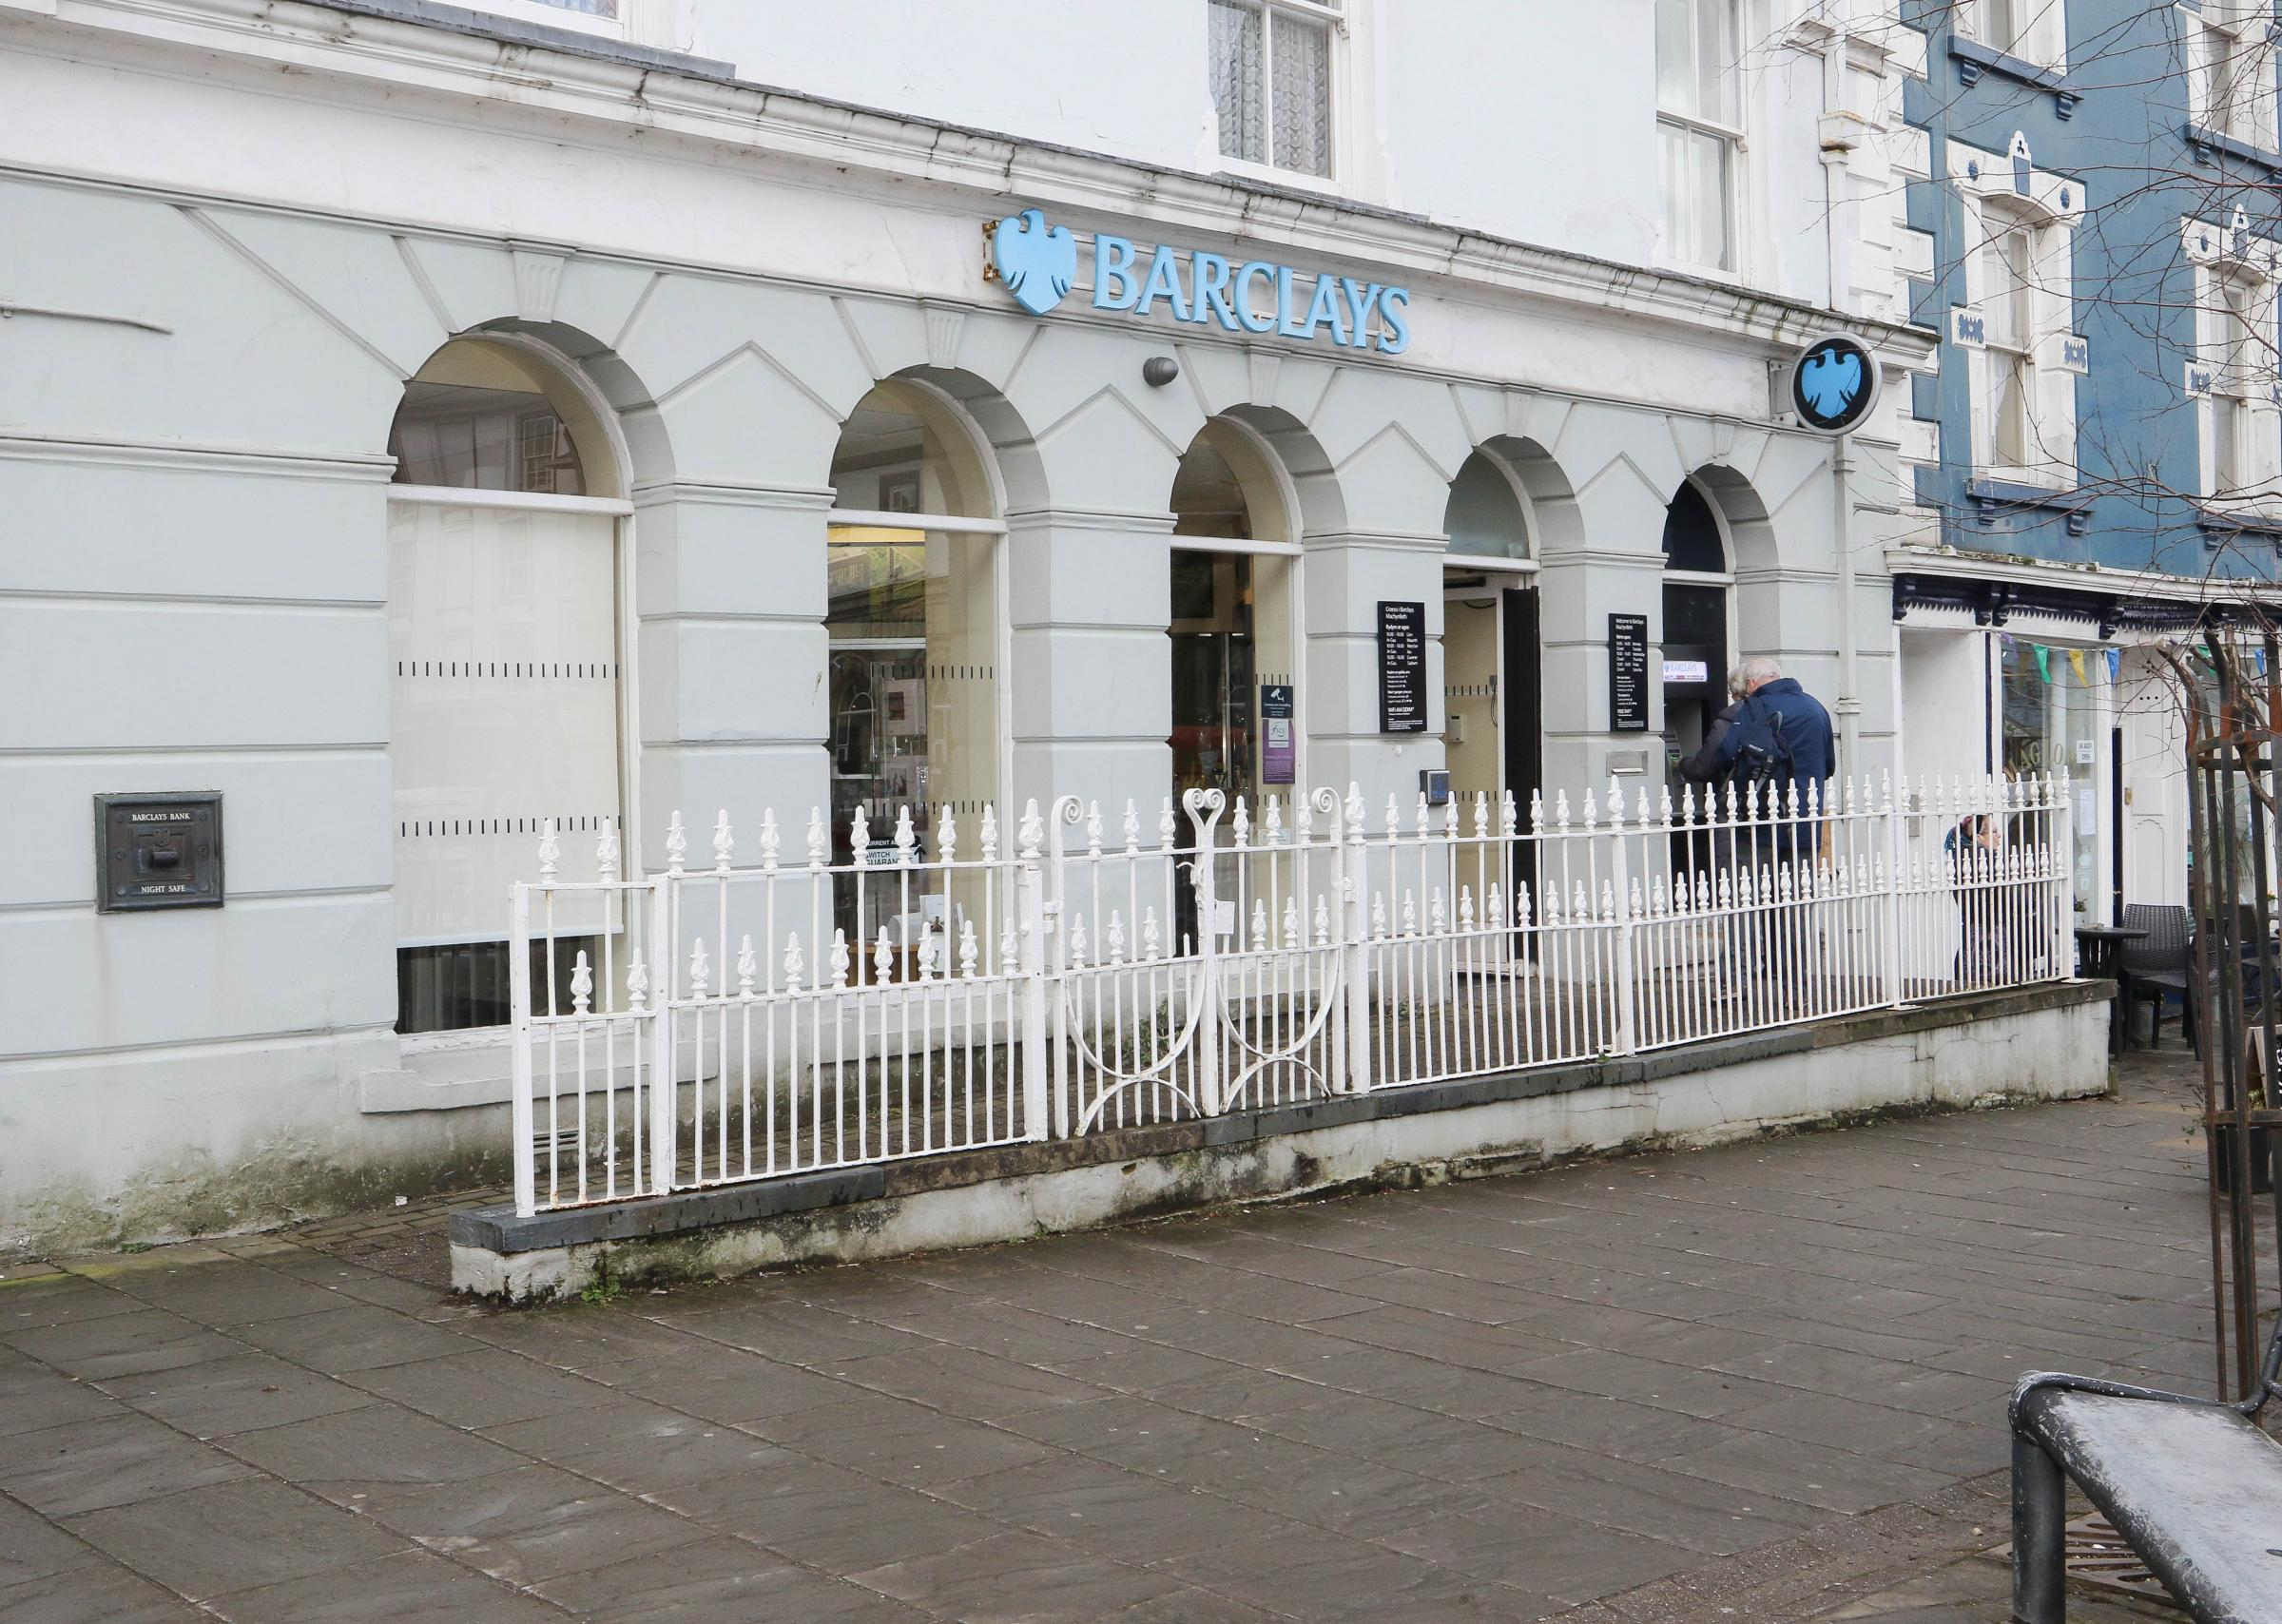 Barclays Bank, Machynlleth.Picture by Phil Blagg.PB132-2018-1.